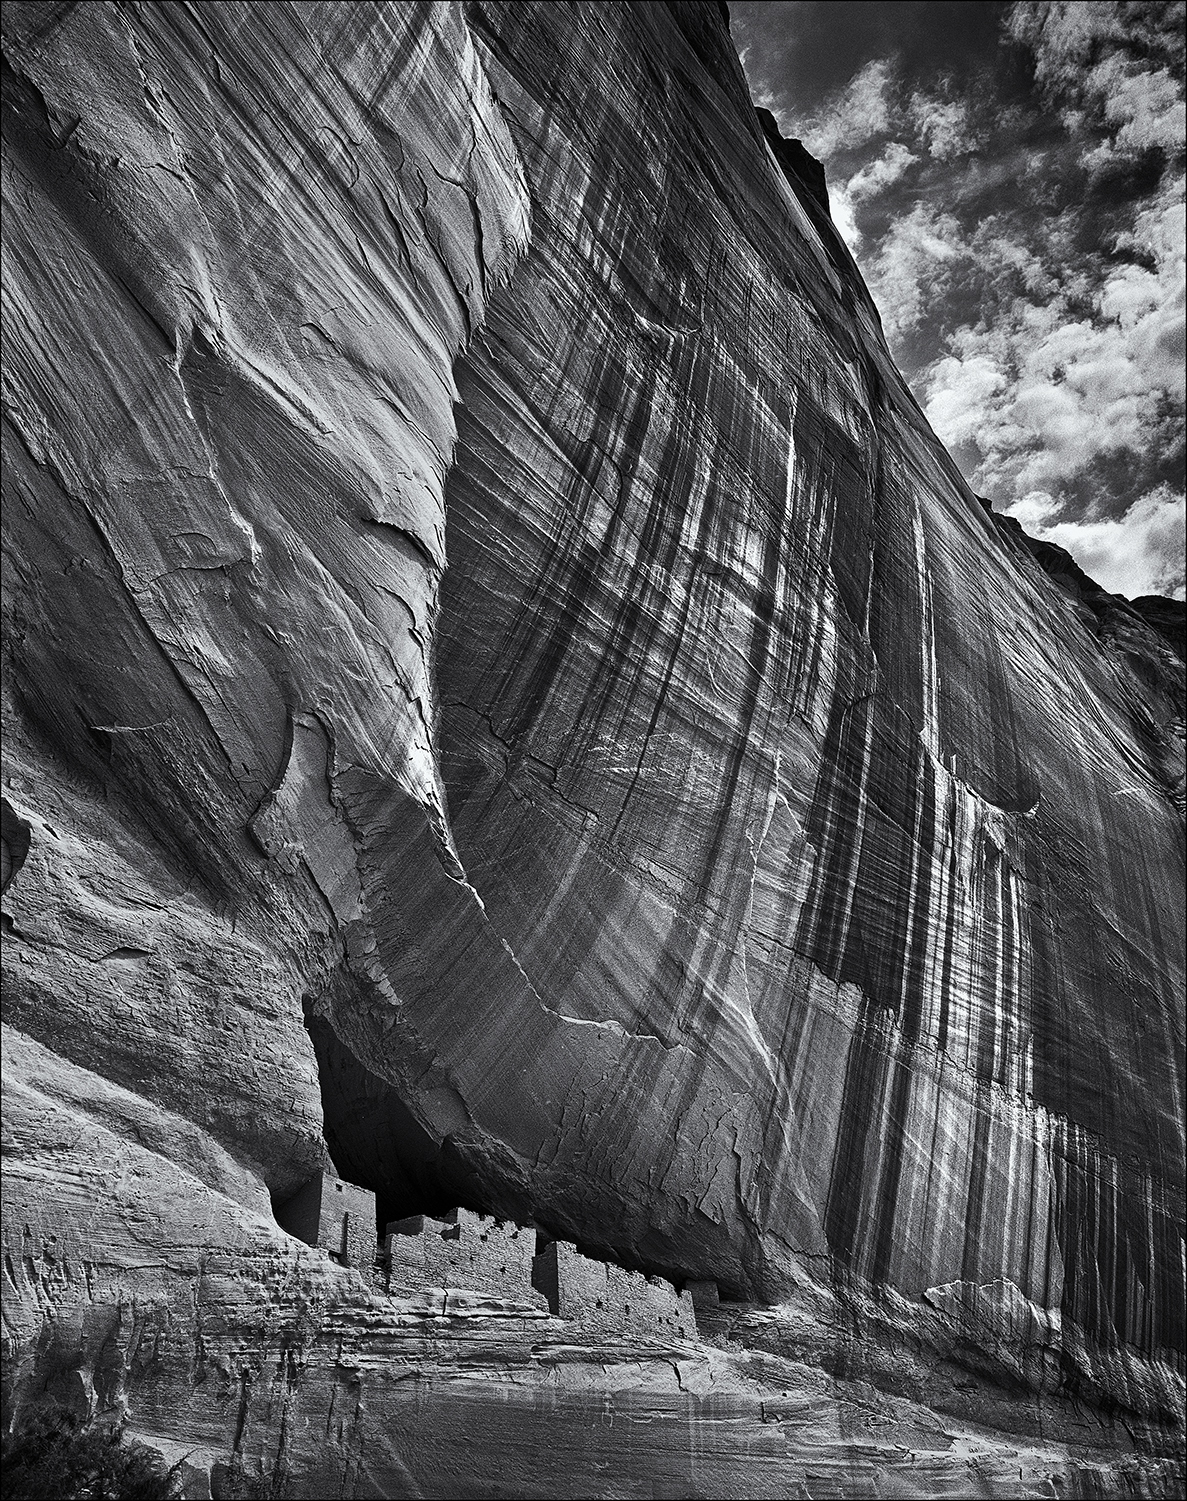 Canyon de Chelly 1.jpg